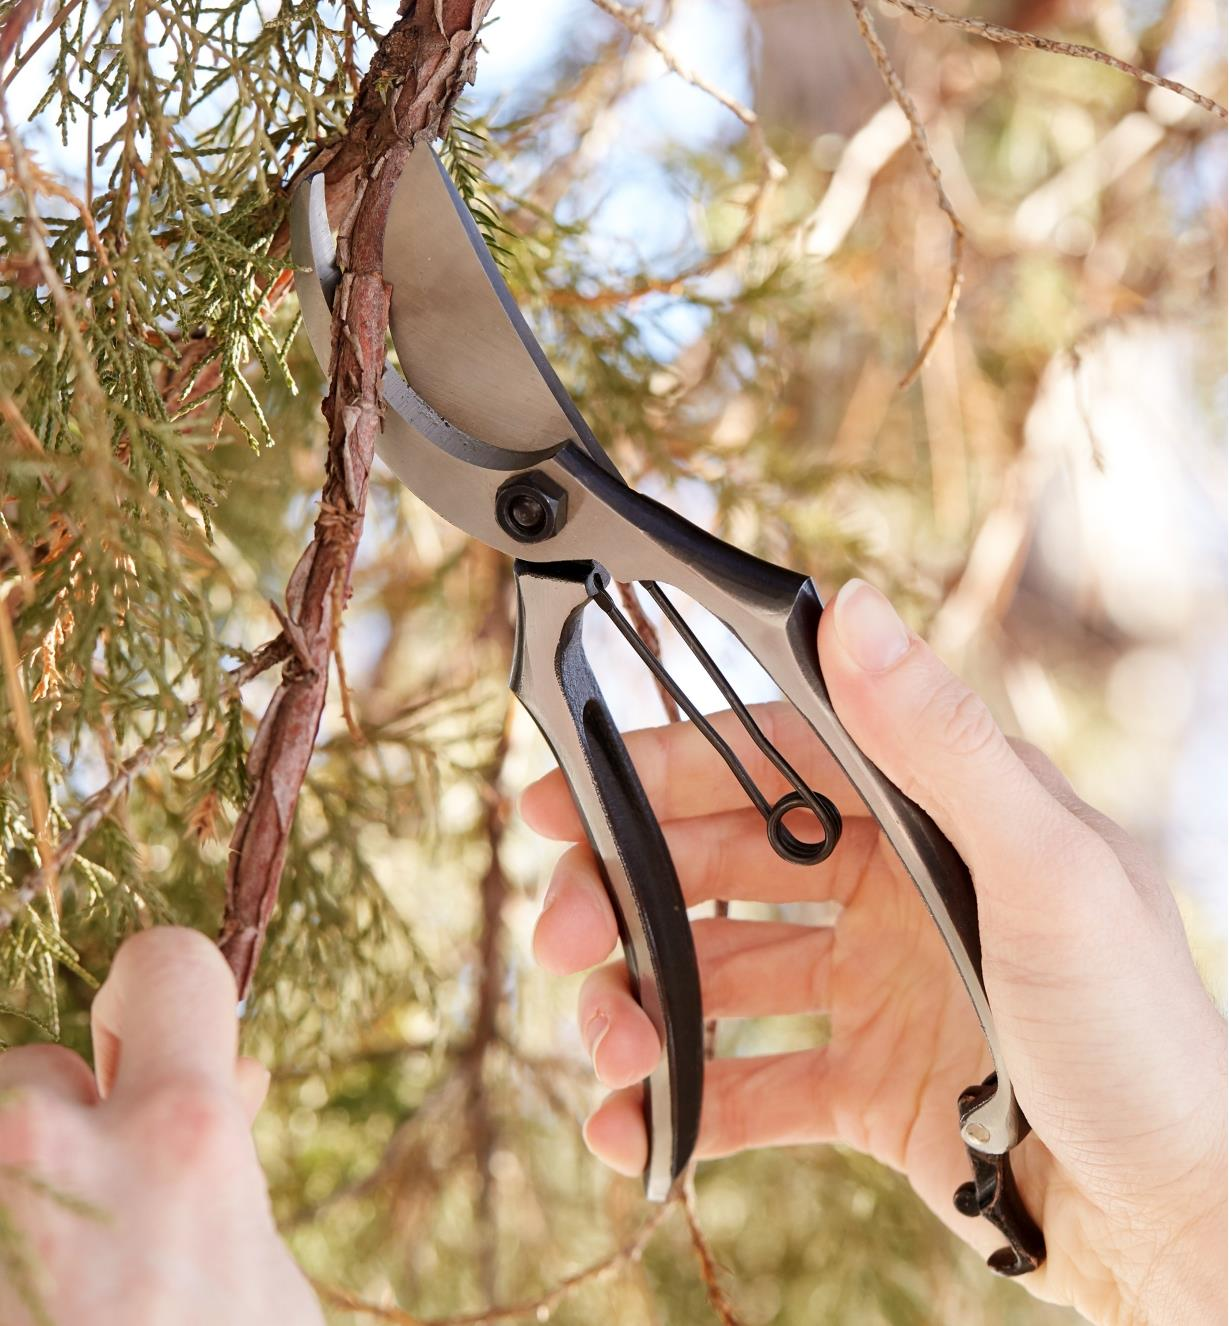 AB362 - All-Steel Bypass Pruner